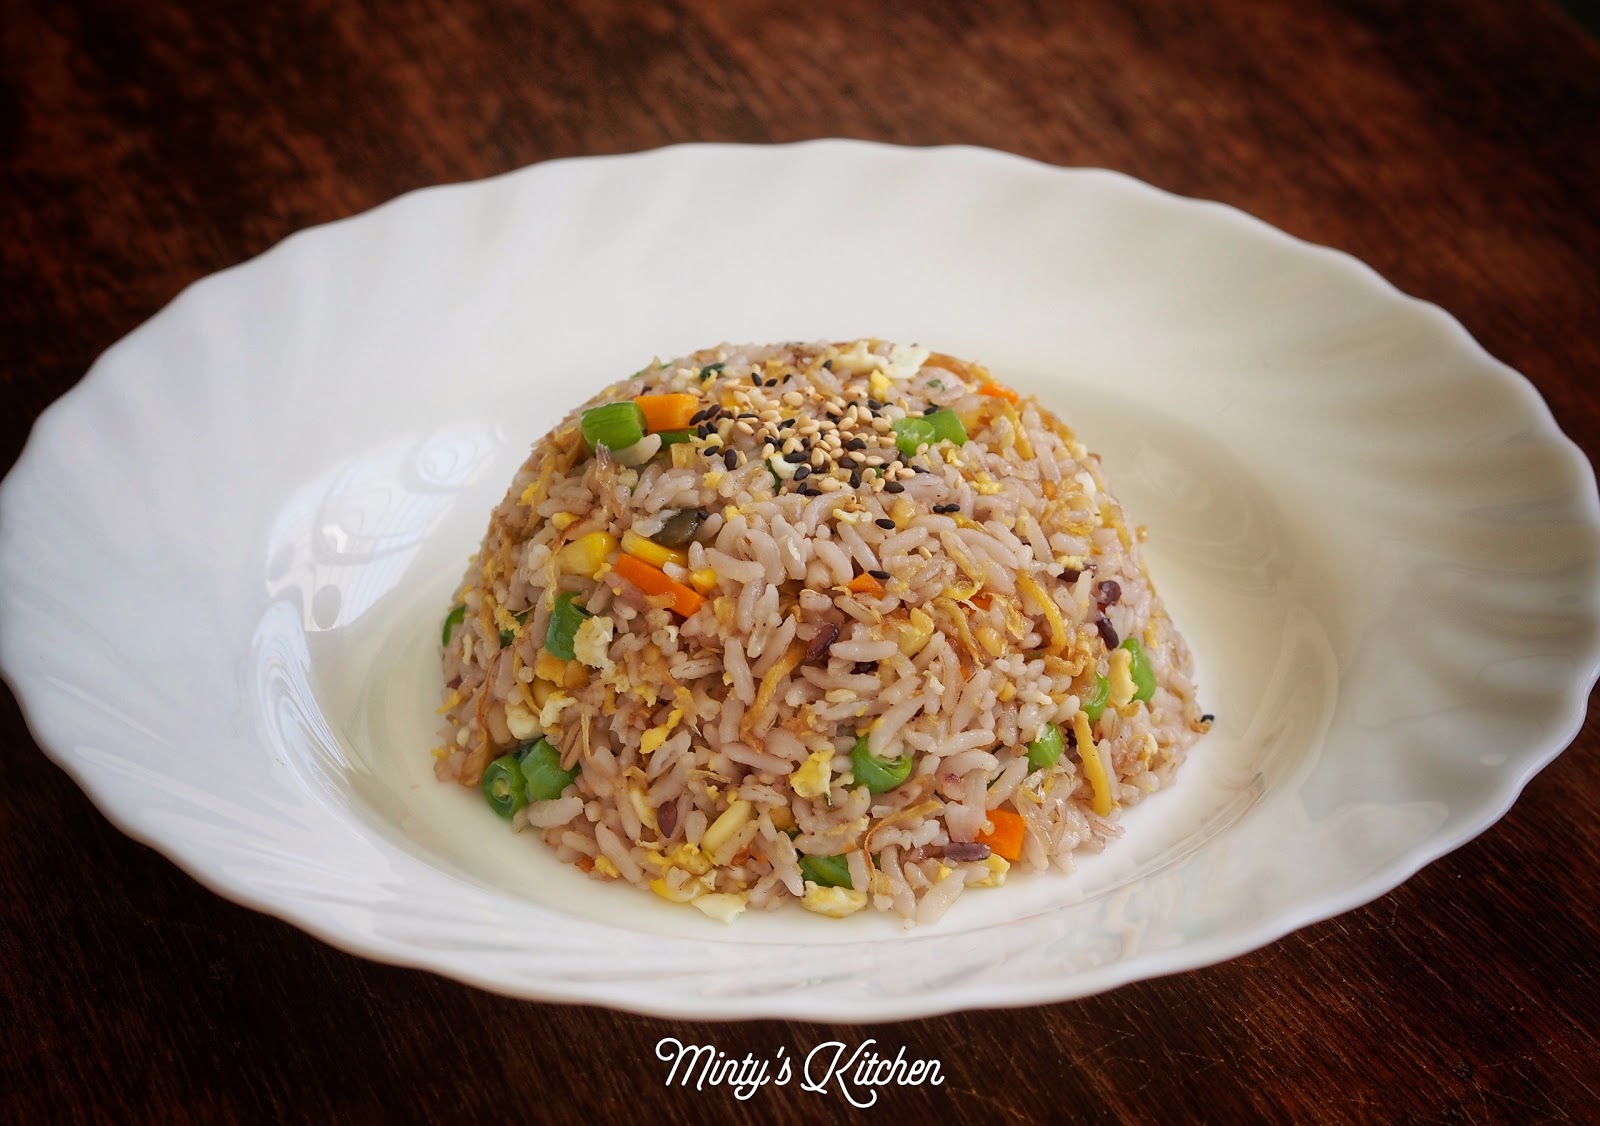 Minty's Kitchen: Ginger Fried Five-Grain Rice